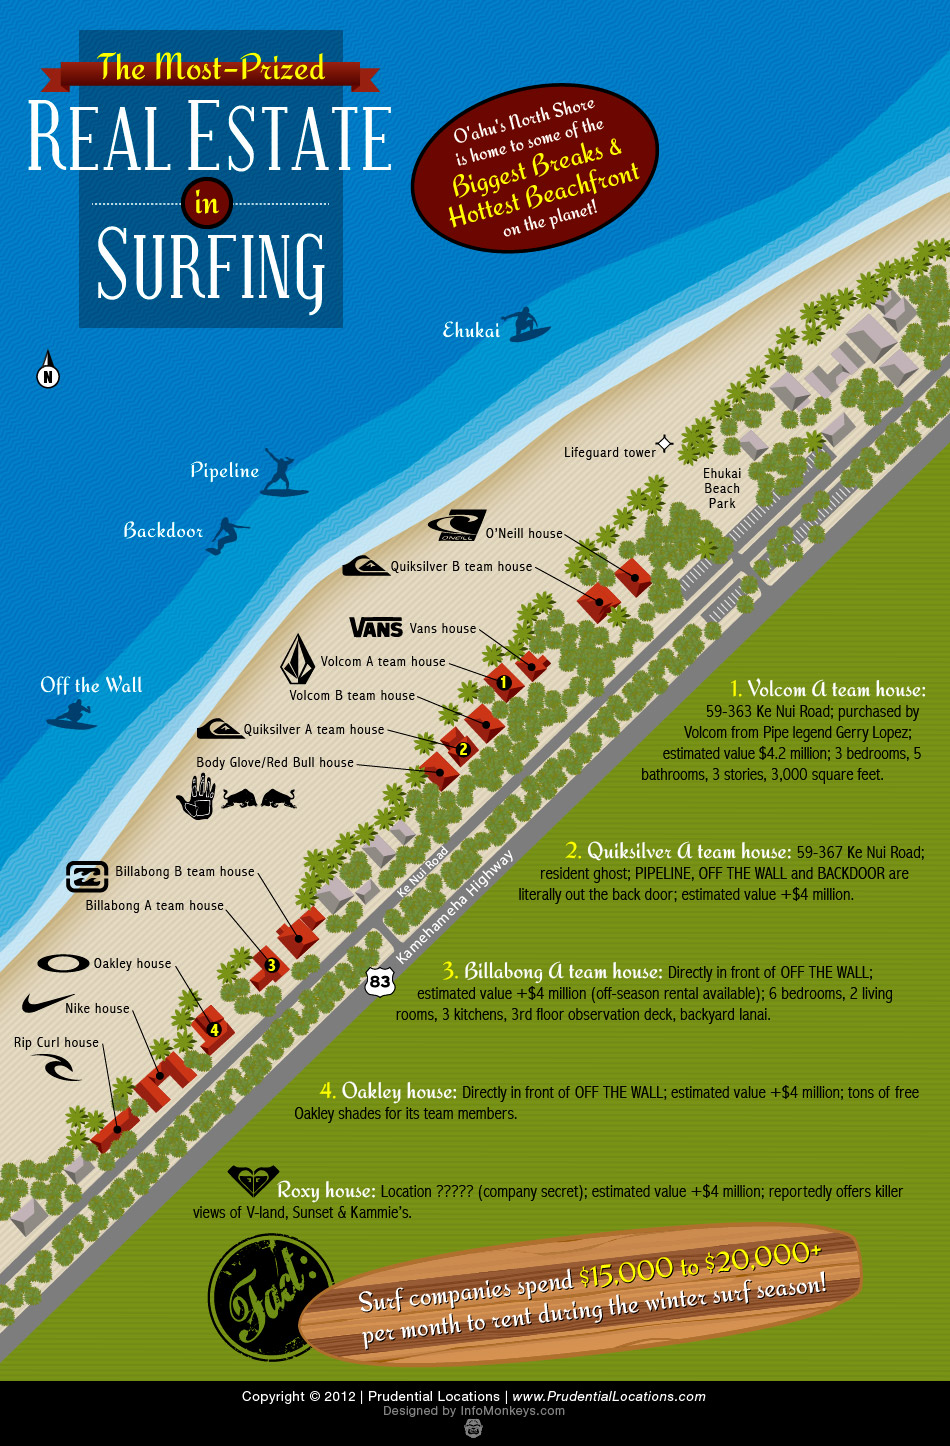 The Hottest Real Estate In Surfing Locations